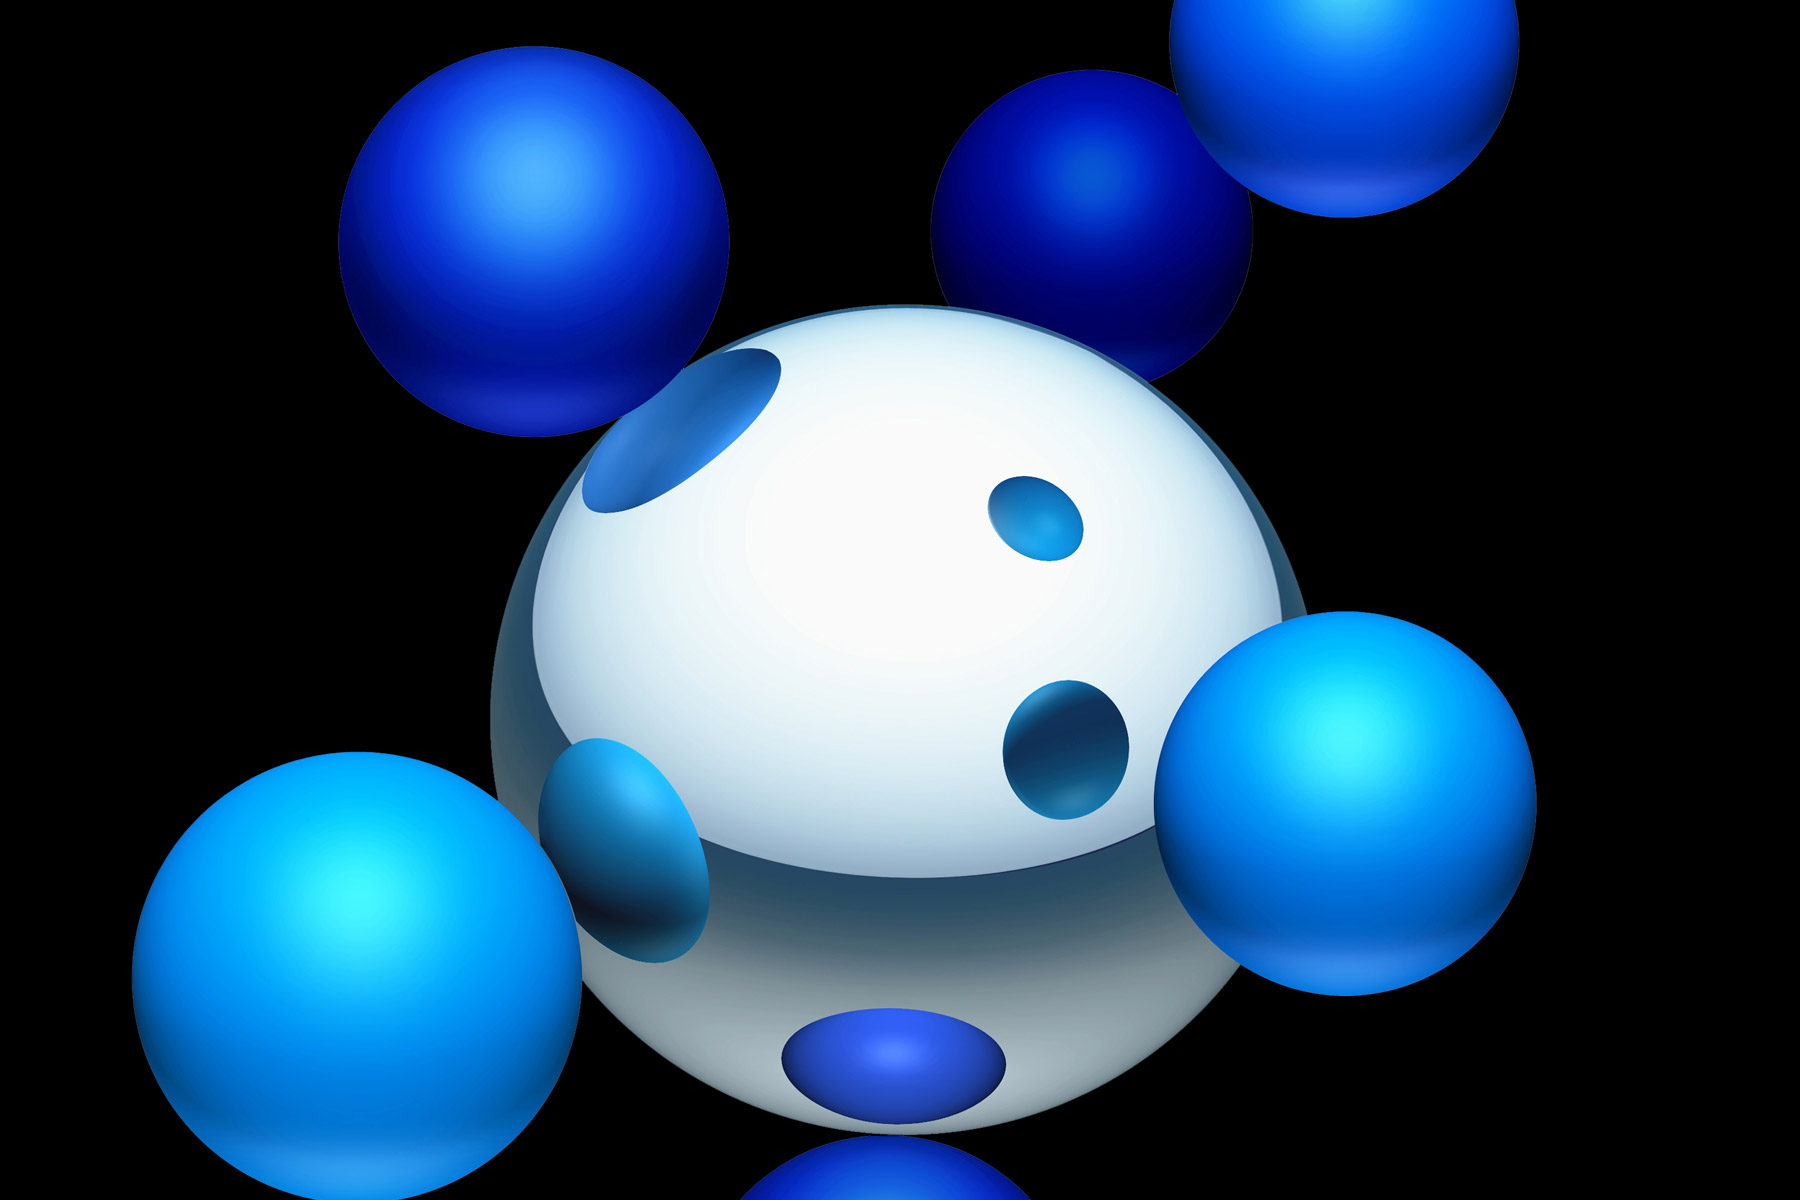 The brand logic behind the identity is based on the fact that all core Sasol products are built around a Hydrogen Carbon atom combination. In addition, the six atoms represent their six business and products units.